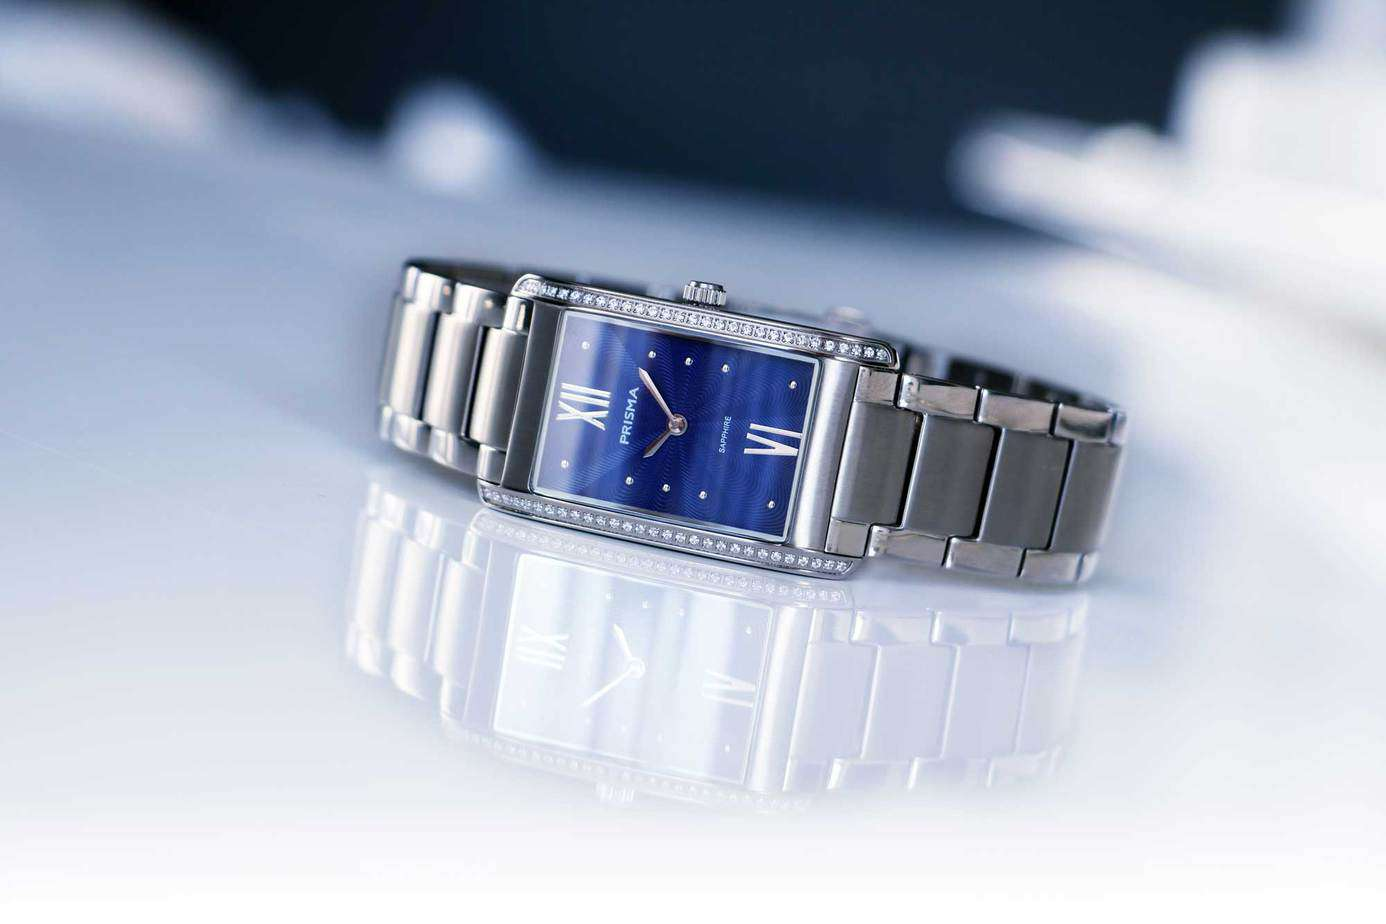 prisma precise zirconia silverblue blauw dameshorloge blue ladies watch blauwe wijzerplaat